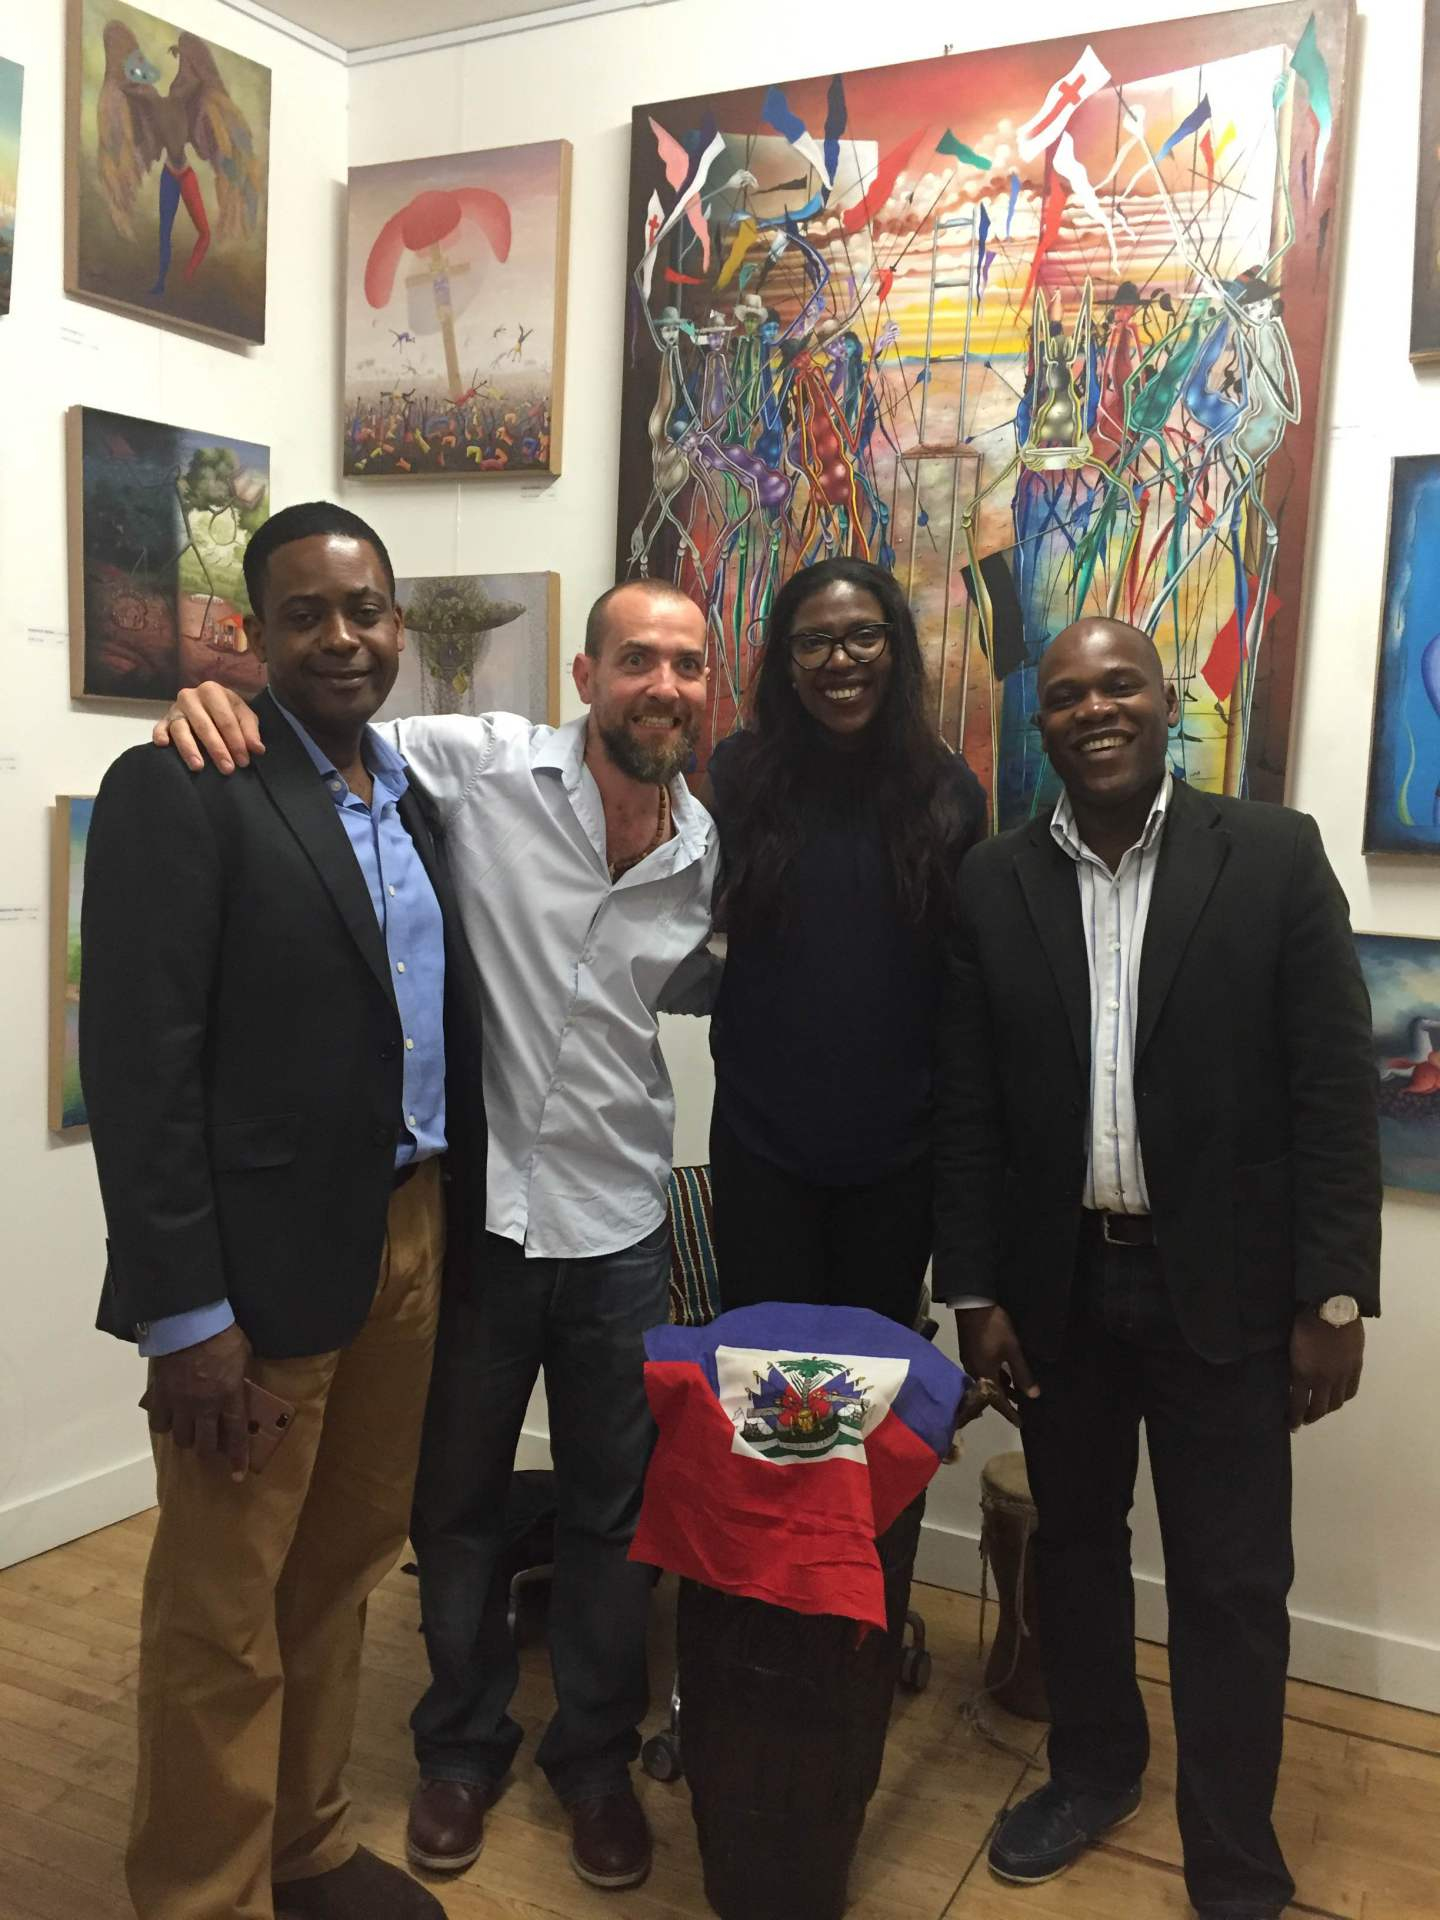 Haitian Arts exposition in London (2017) by A. Latour